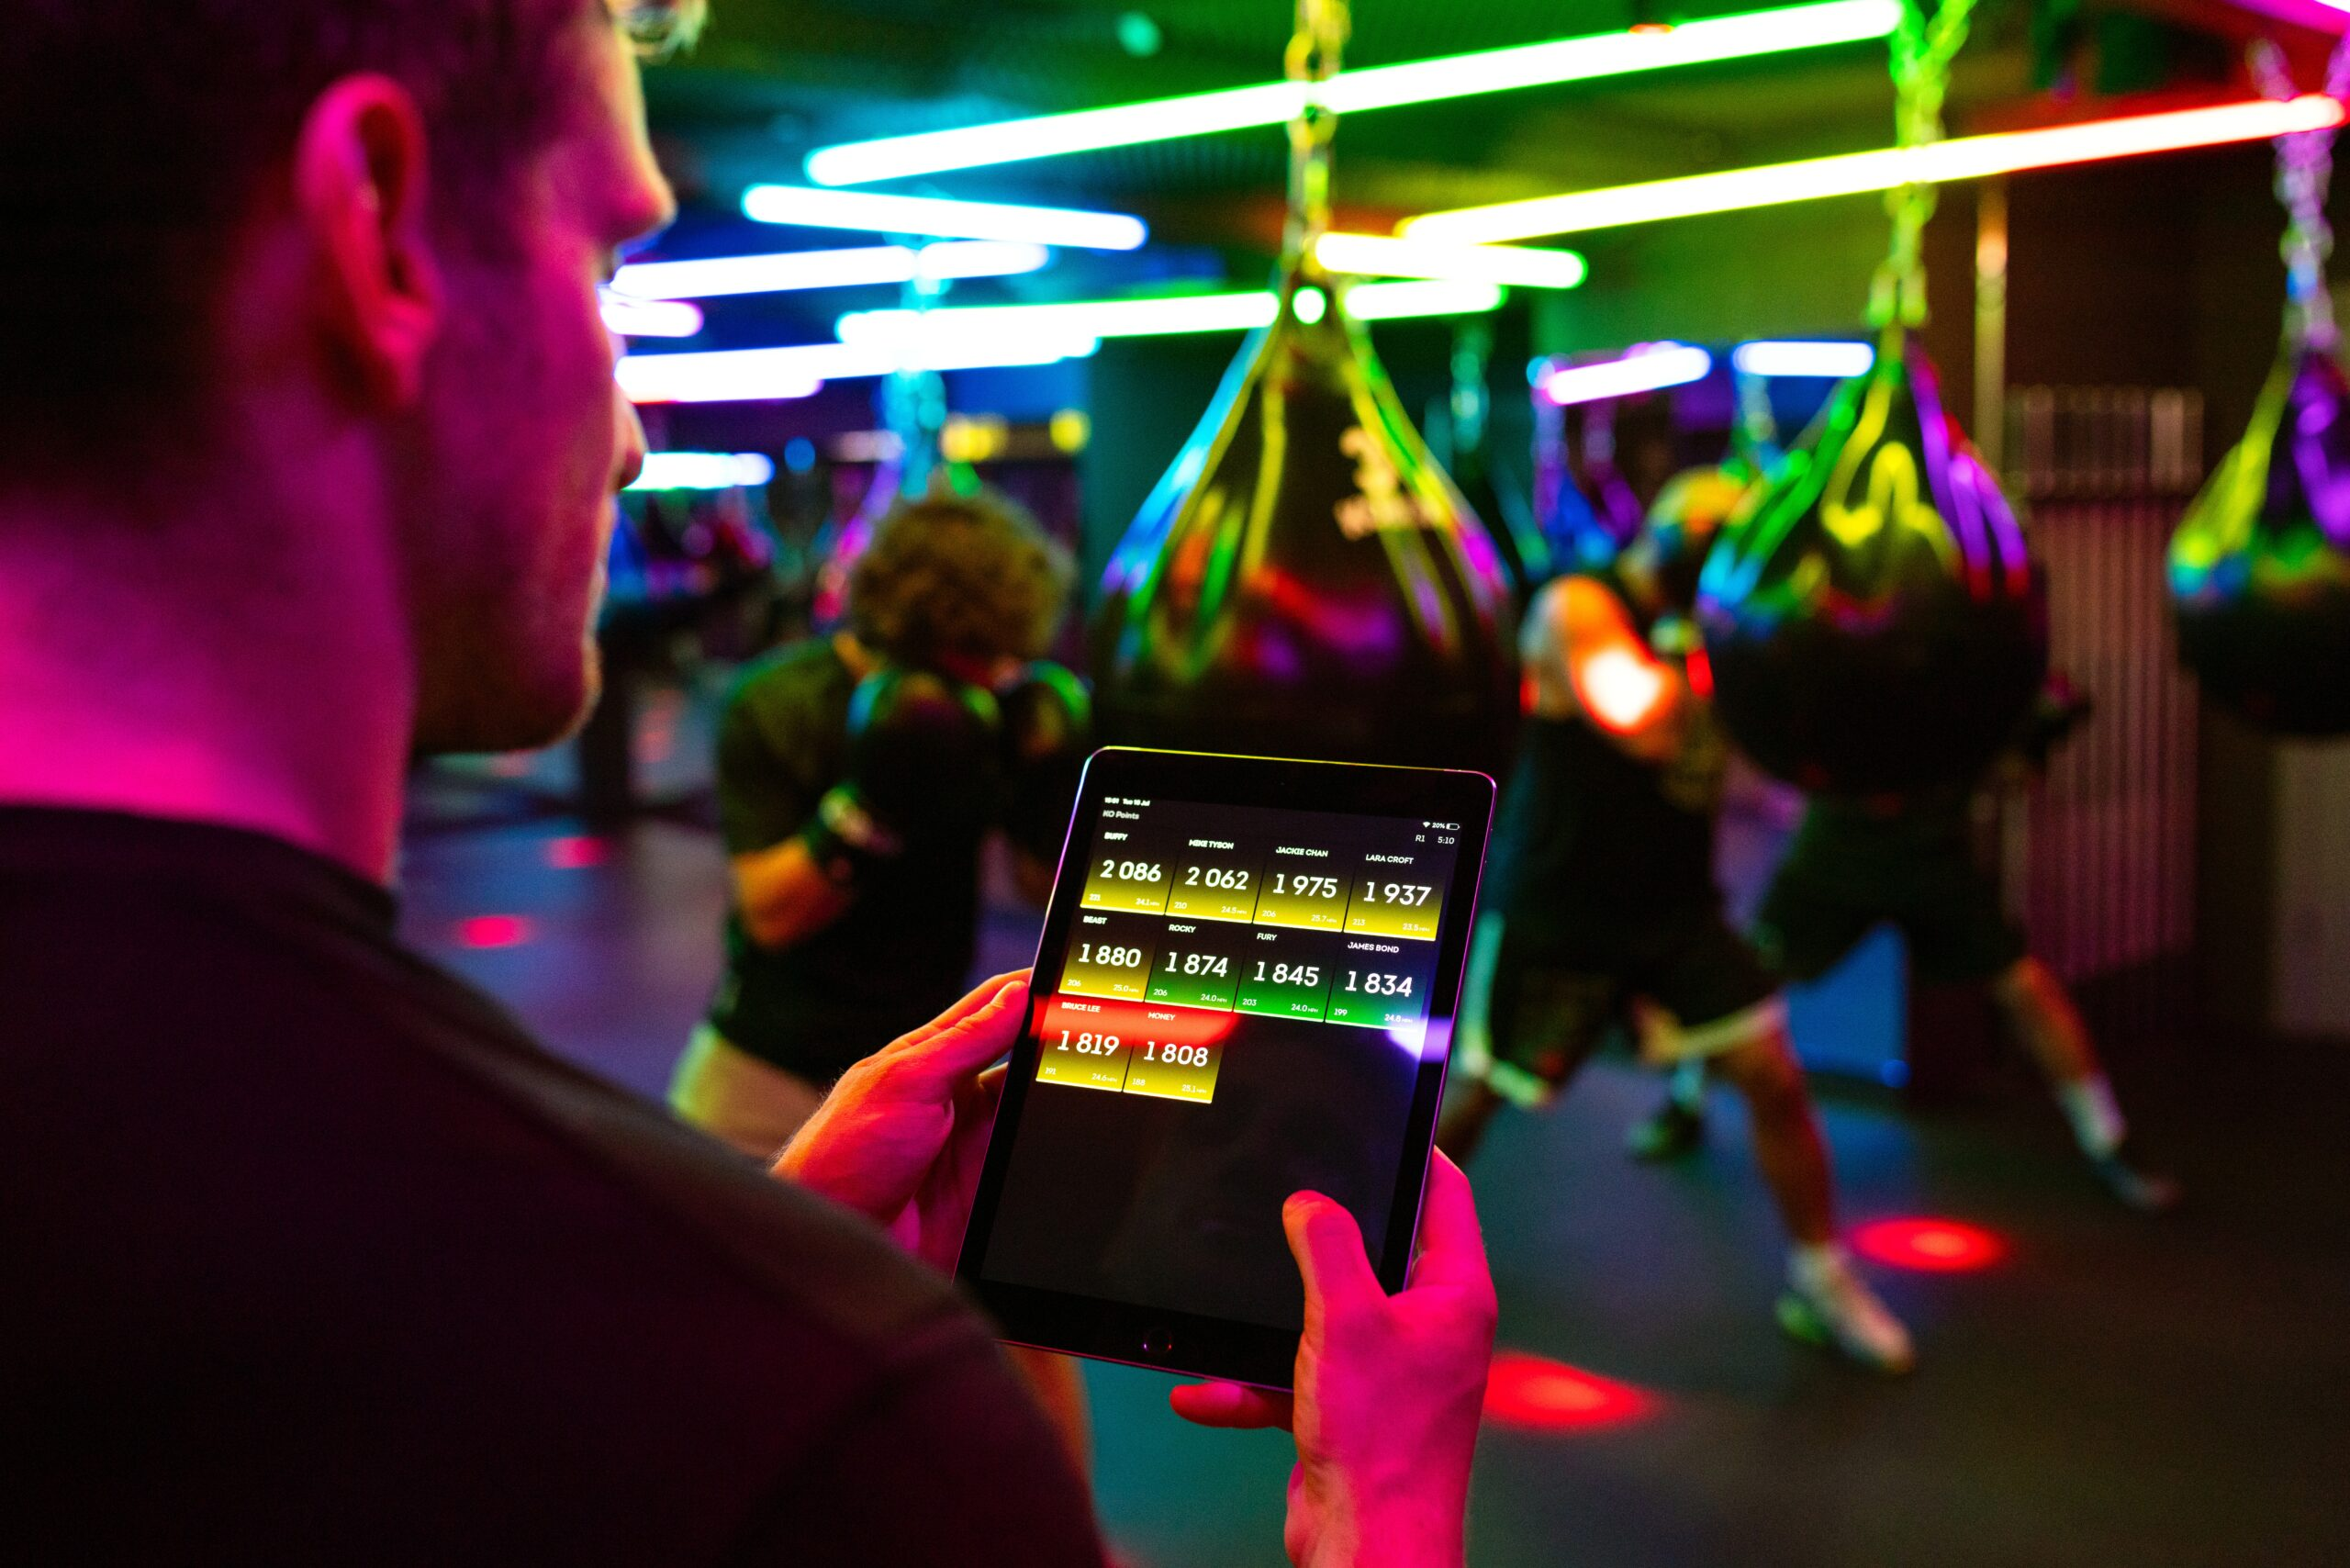 La connexion sociale renforce l'attrait des applications de fitness